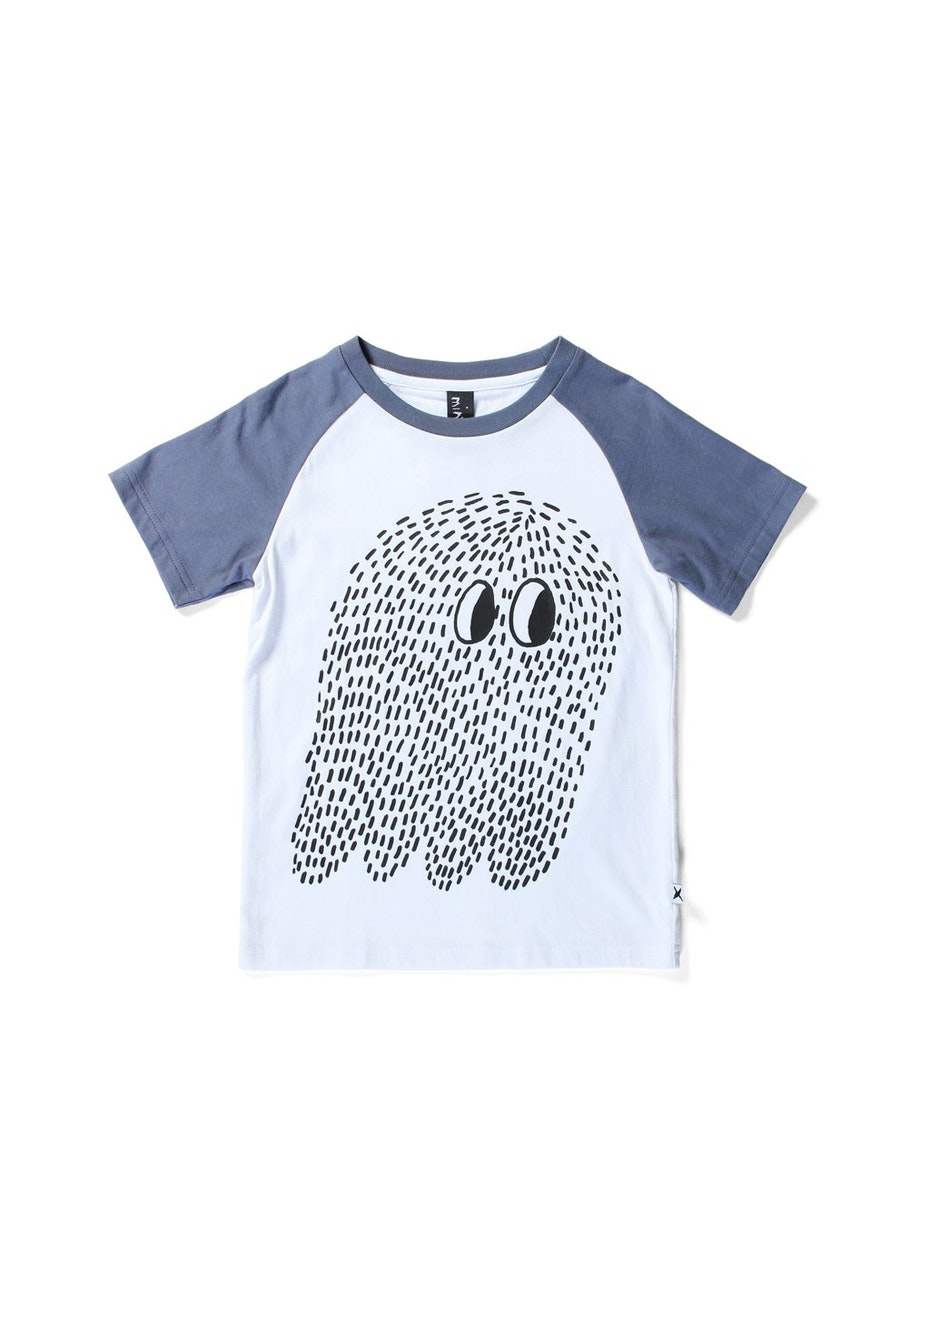 Minti - Skth Ghost - Raglan T - Boys - White/Midnight